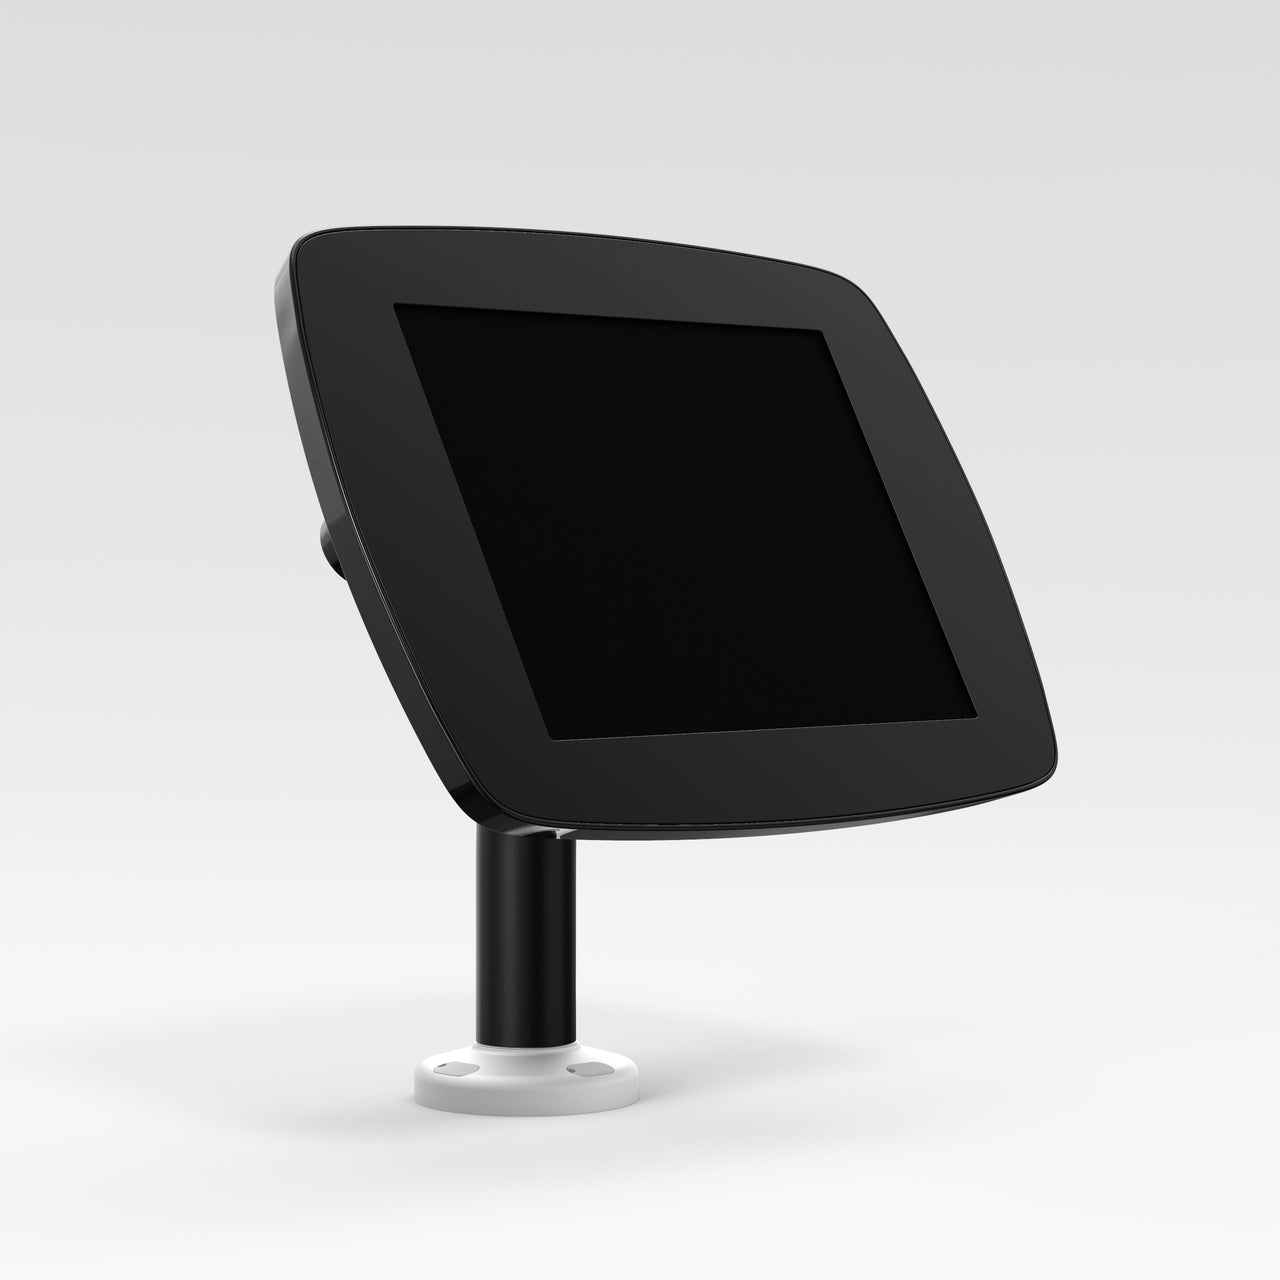 Bouncepad Swivel 60 - A secure tablet & iPad desk mount in black.